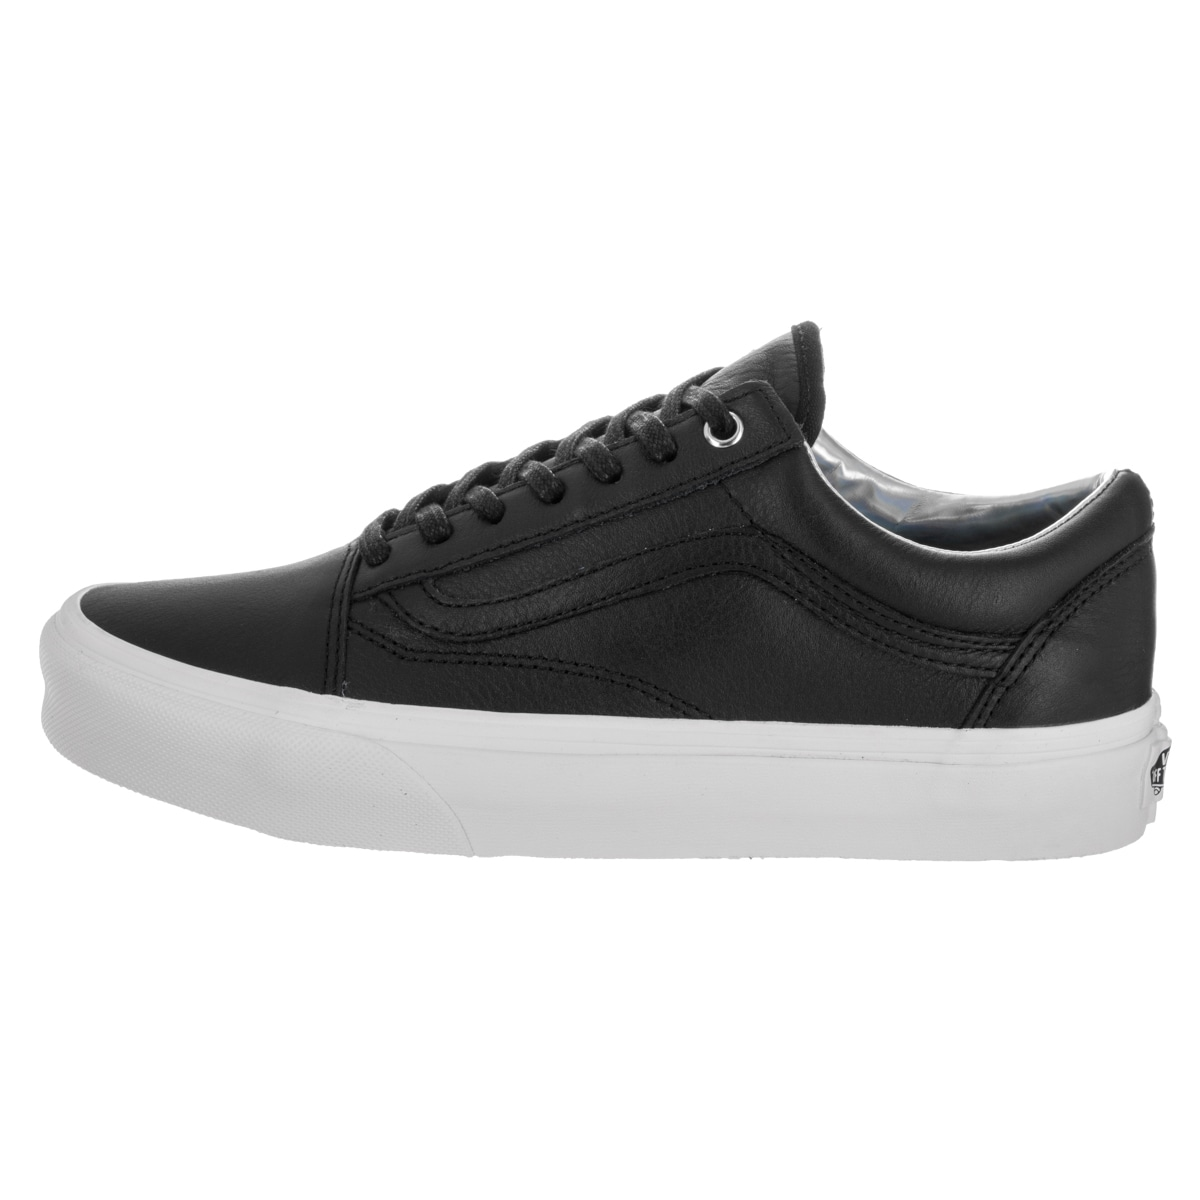 ca1b694f41bb60 Shop Vans Unisex Old Skool Hologram Black Leather Skate Shoes - Free  Shipping Today - Overstock - 13746930